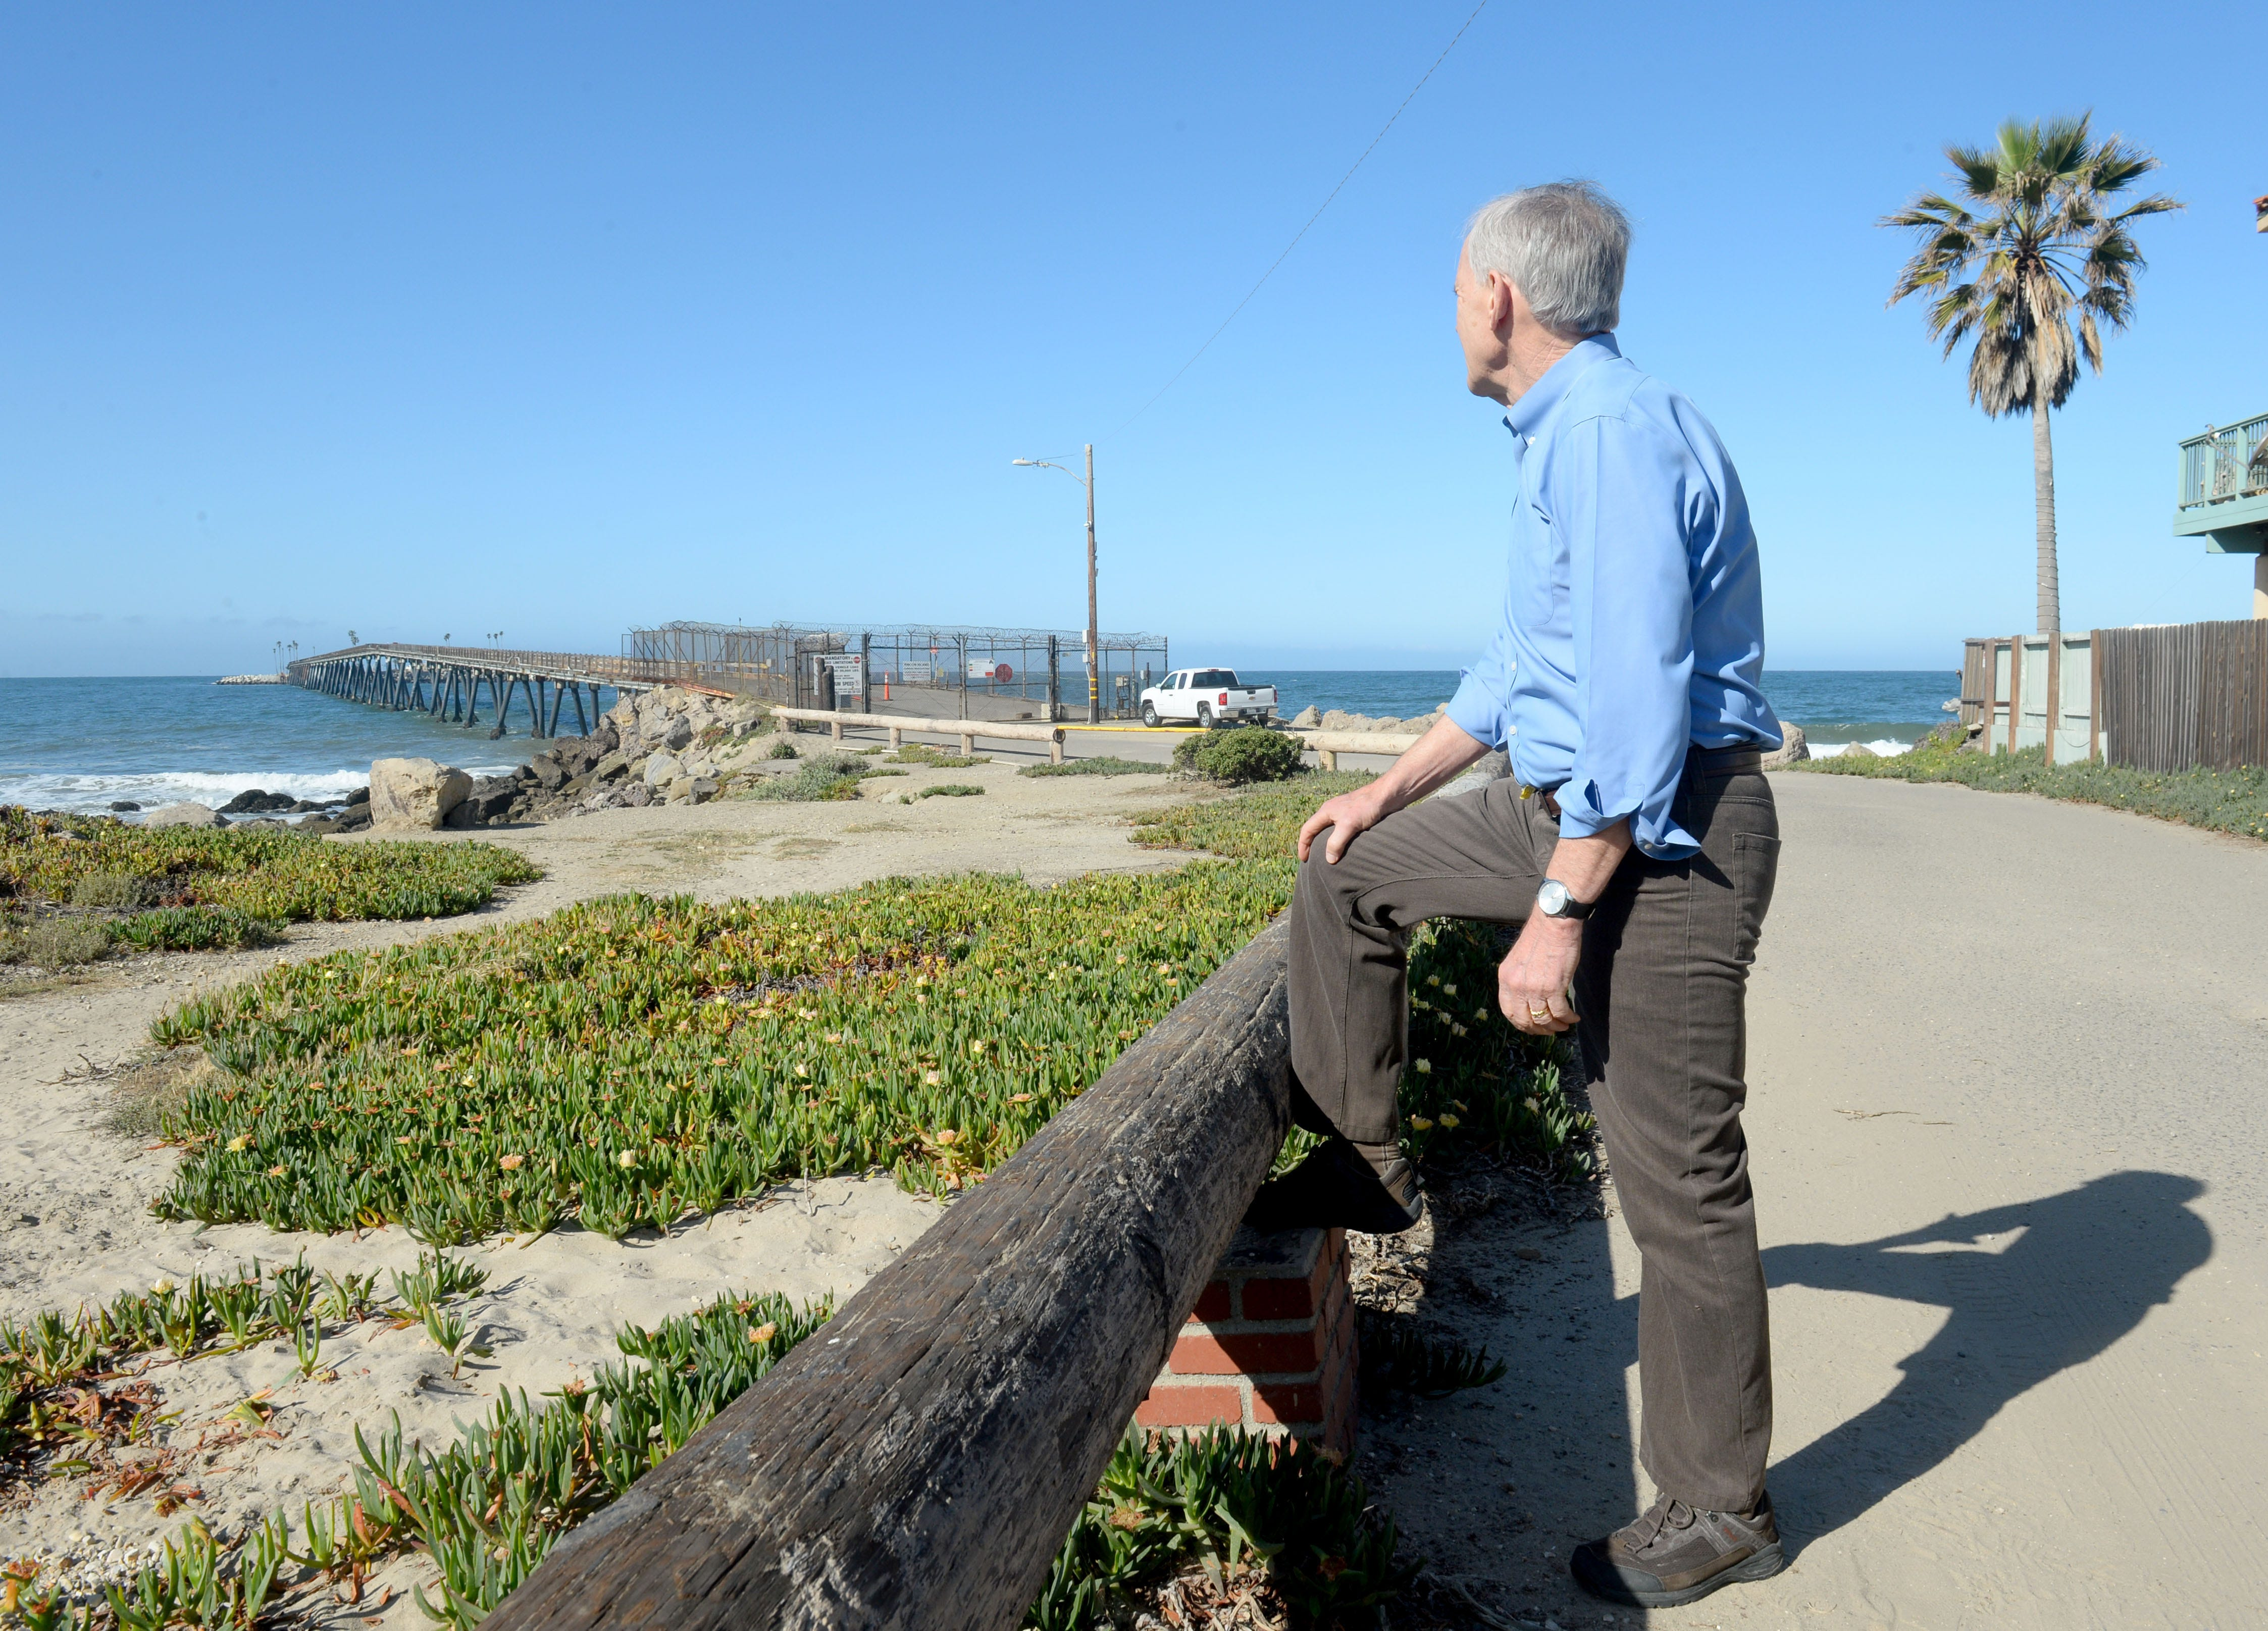 Assemblymember Steve Bennett, D-Ventura, is working to reform bankruptcy law in California after oil wells were left to the state to clean up within the area he represents.